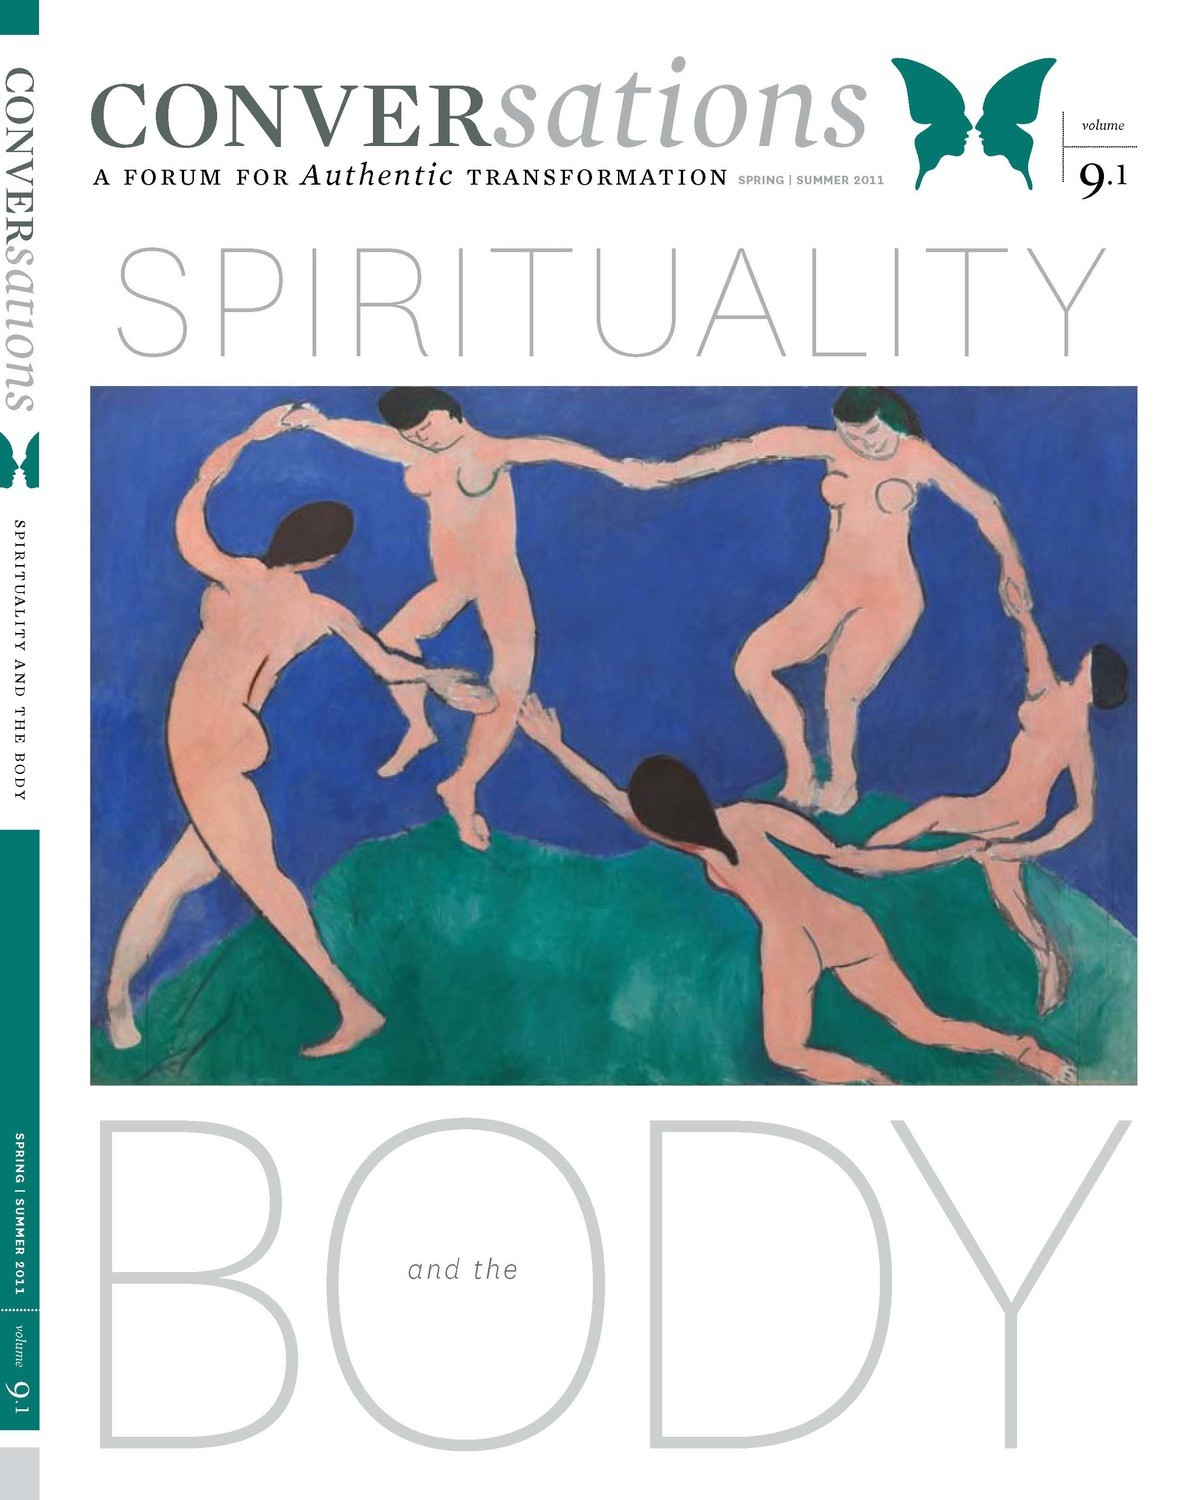 Conversations Journal 9.1 Spirituality and the Body (Hardcopy)